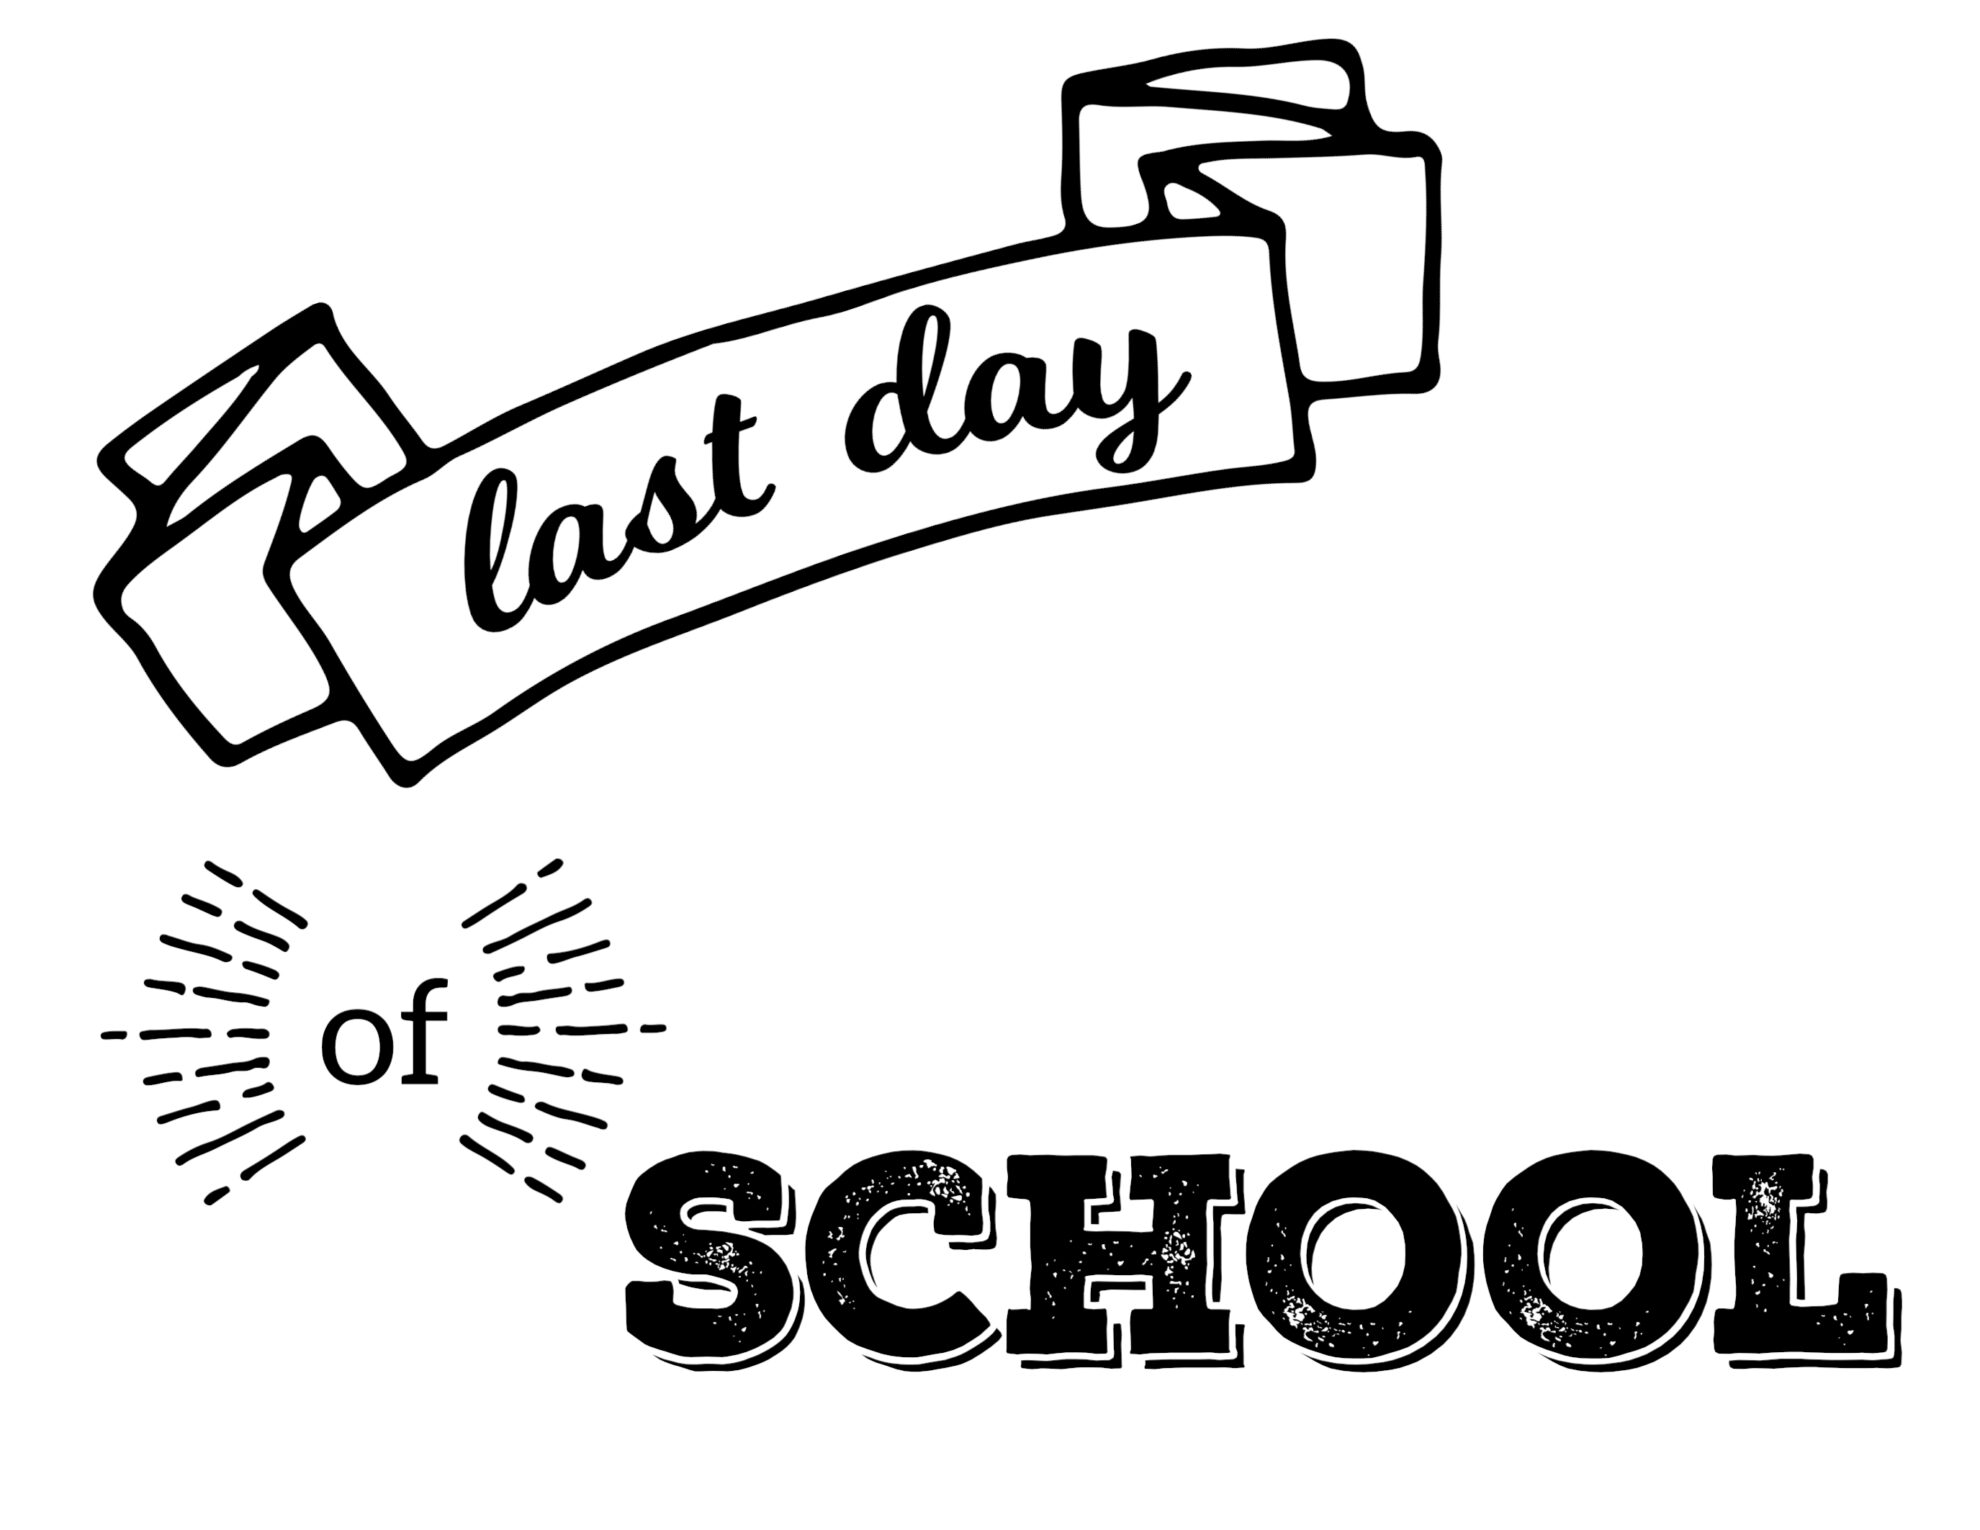 graphic regarding Last Day of School Signs Printable known as Very last Working day of Higher education Printable Signs or symptoms - Paper Path Style